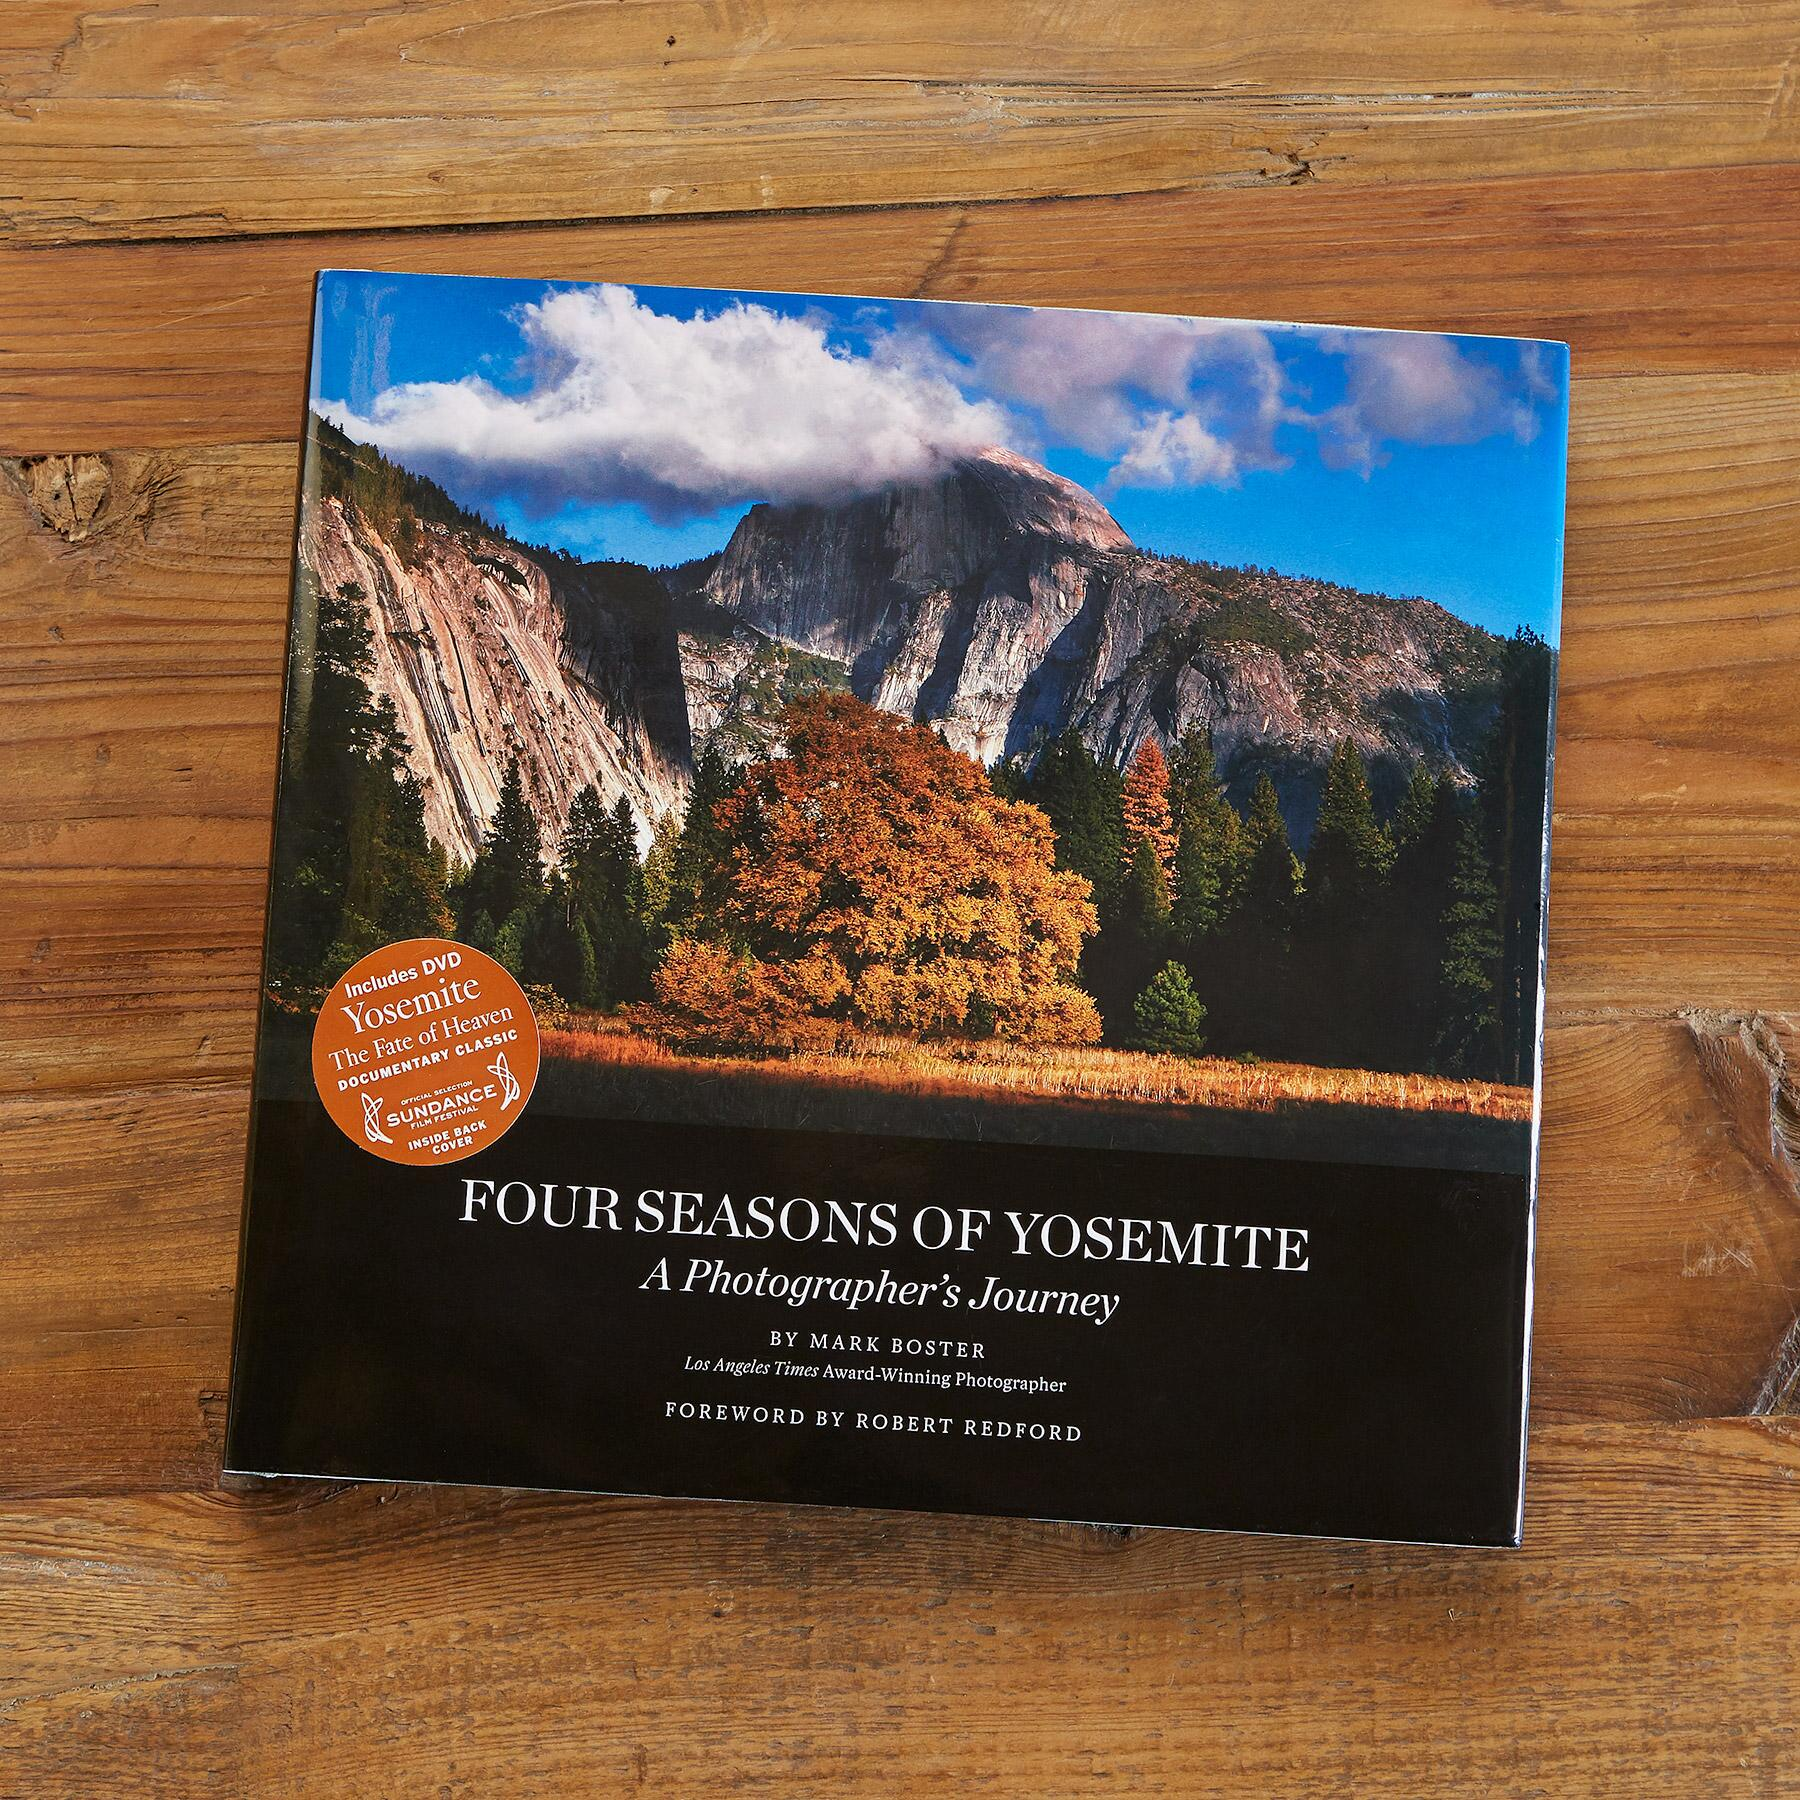 FOUR SEASONS OF YOSEMITE BOOK: View 1